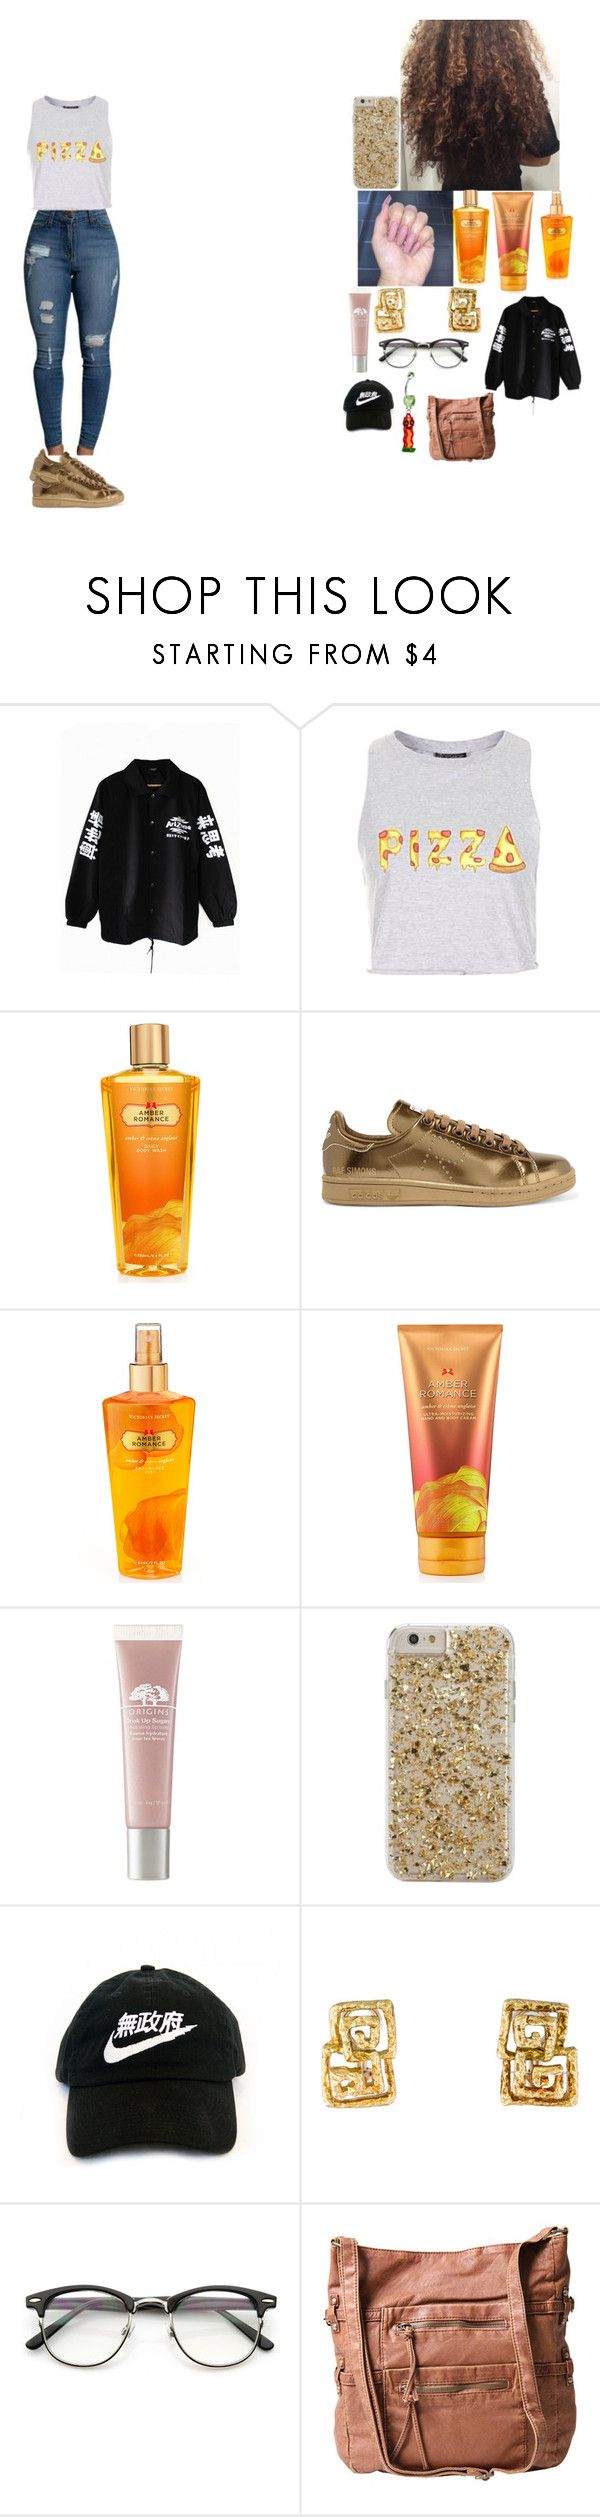 """~ pizza right ? ~"" by foodislyfe ❤ liked on Polyvore featuring Victoria's Secret, adidas Originals, Origins, Case-Mate and ZeroUV"